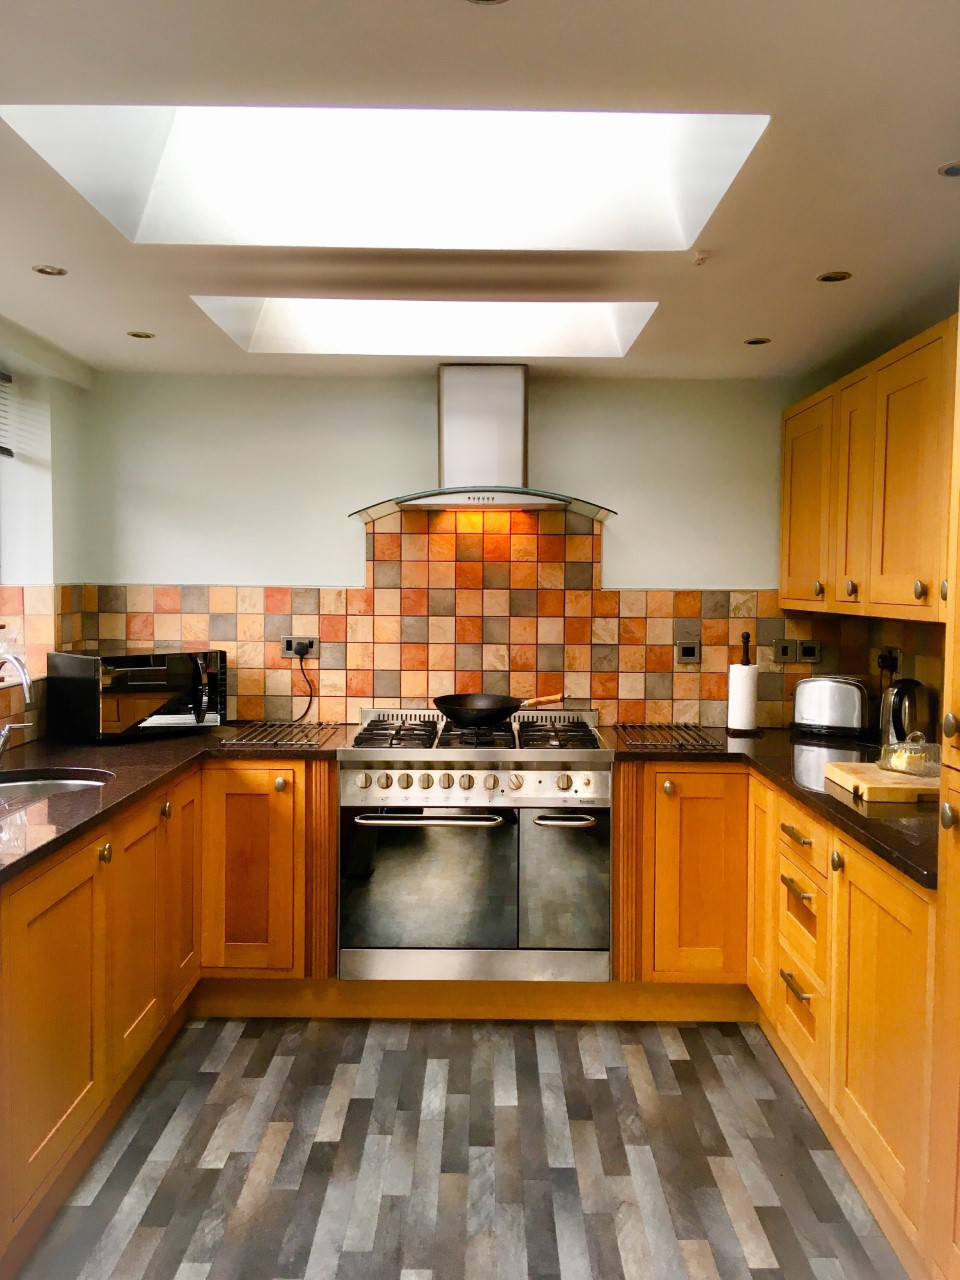 Brightening your home with VELUX roof windows. my kitchen with two velux roof windows, in front of you is a range cooker with tiles wall and at either side is wooden cupboards with granite worktop